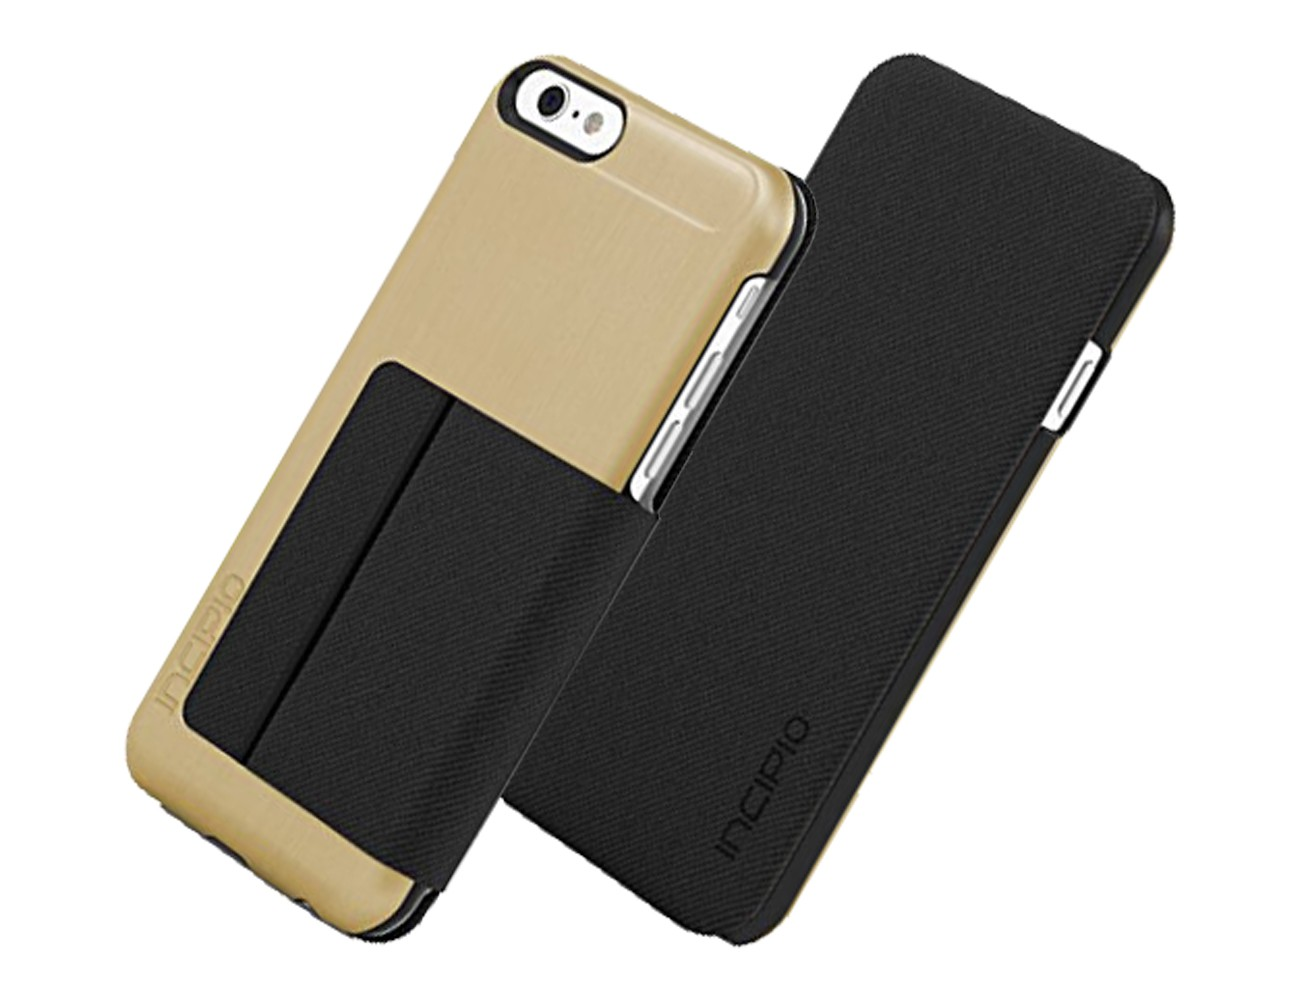 Incipio Highland Case Cover for Apple iPhone 6 (Gold/Black) - IPH-1183-GLDBLK